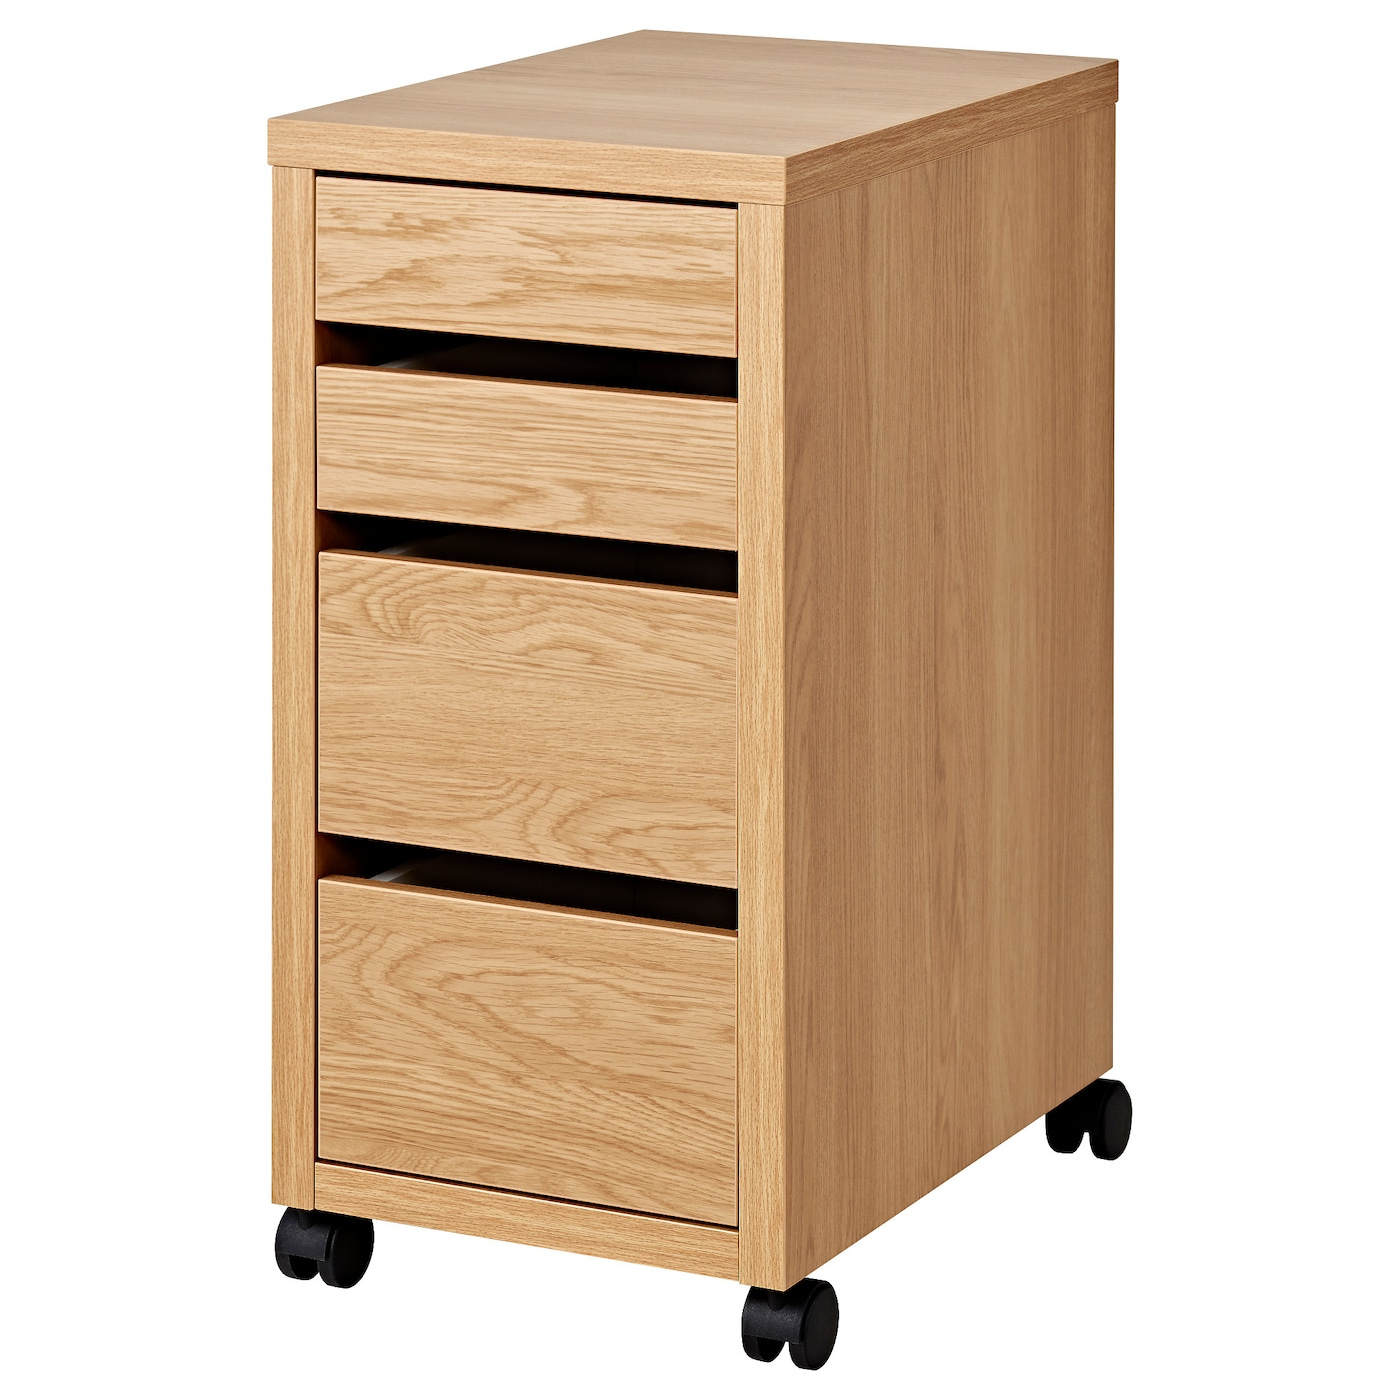 IKEA MICKE drawer unit on castors Drawer stops prevent the drawer from being pulled out too far.